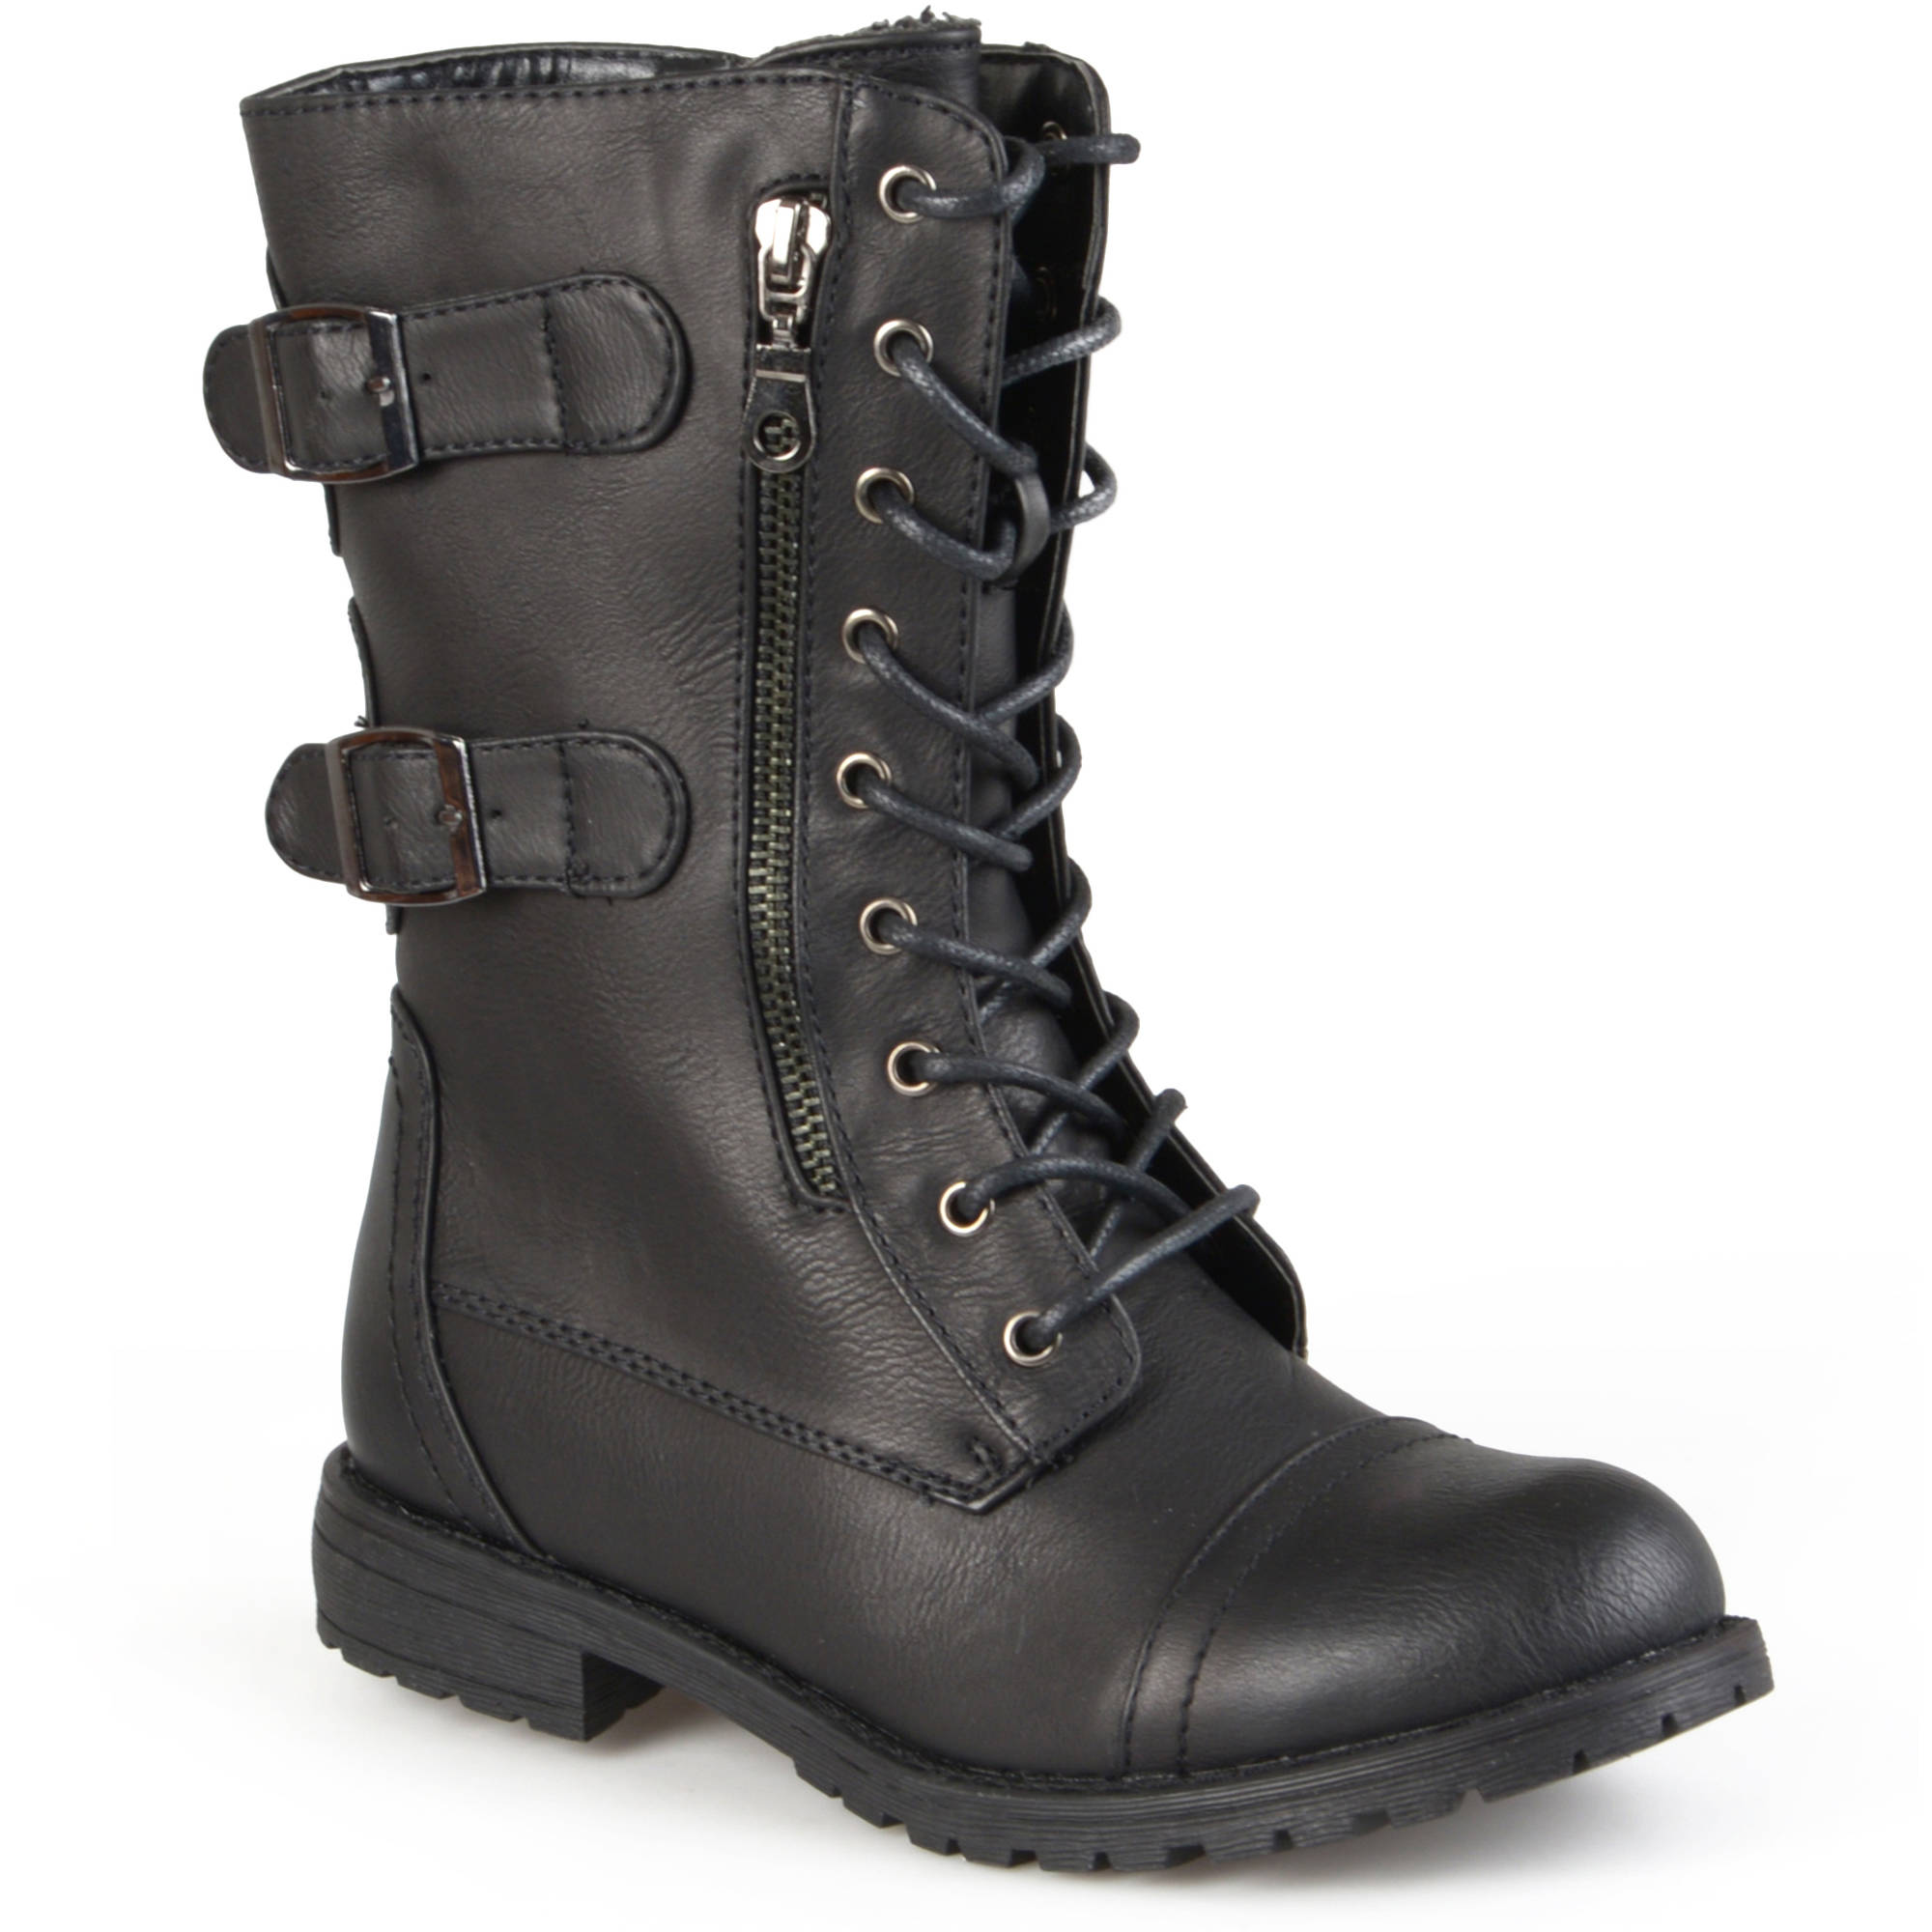 Womens Winter Boots Clearance y2VEilNB